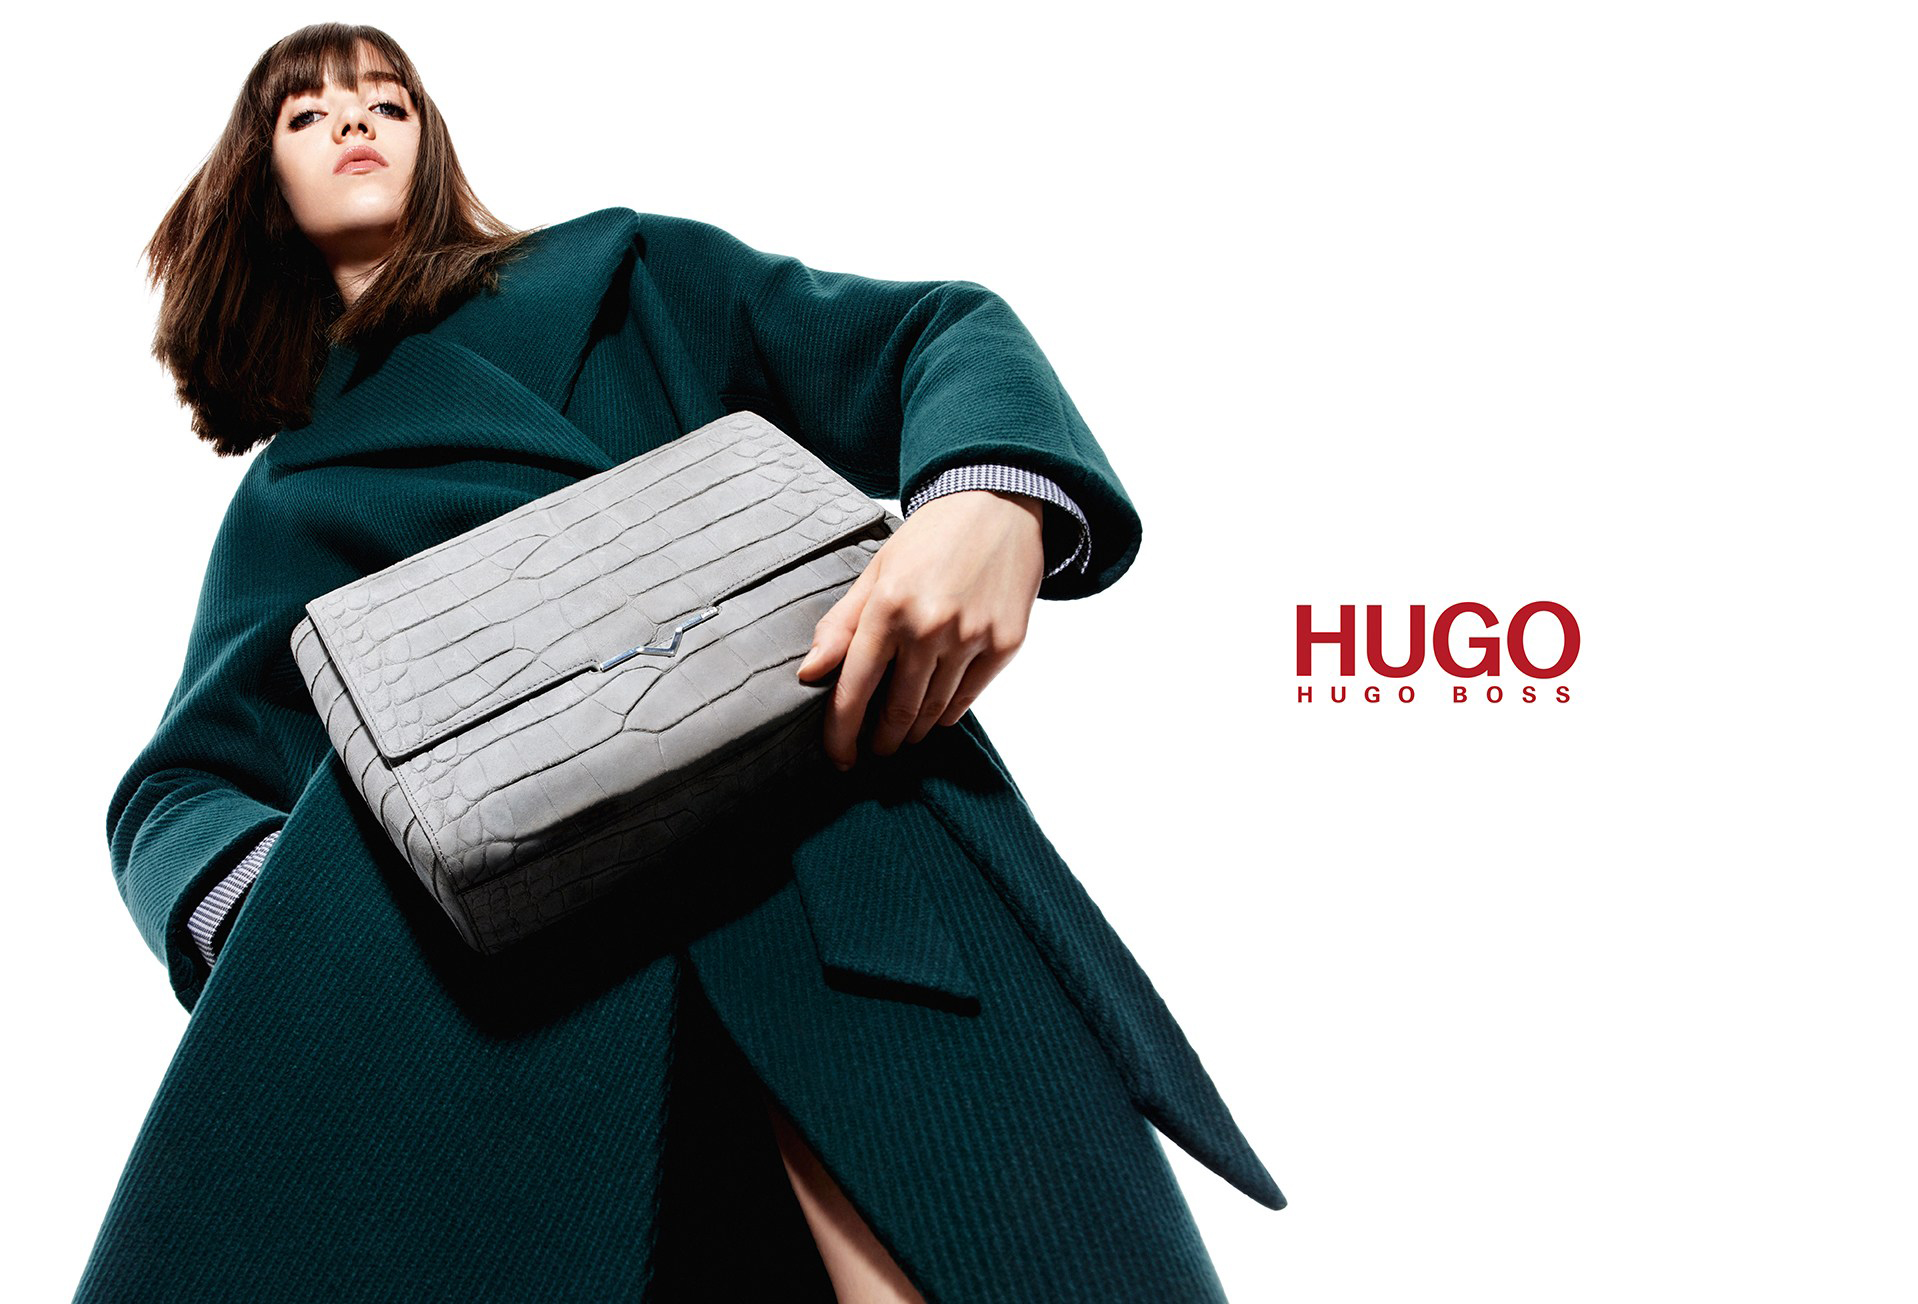 grace-hartzel-by-daniel-sannwald-for-hugo-by-hugo-boss-fallwinter-2015-2016-2